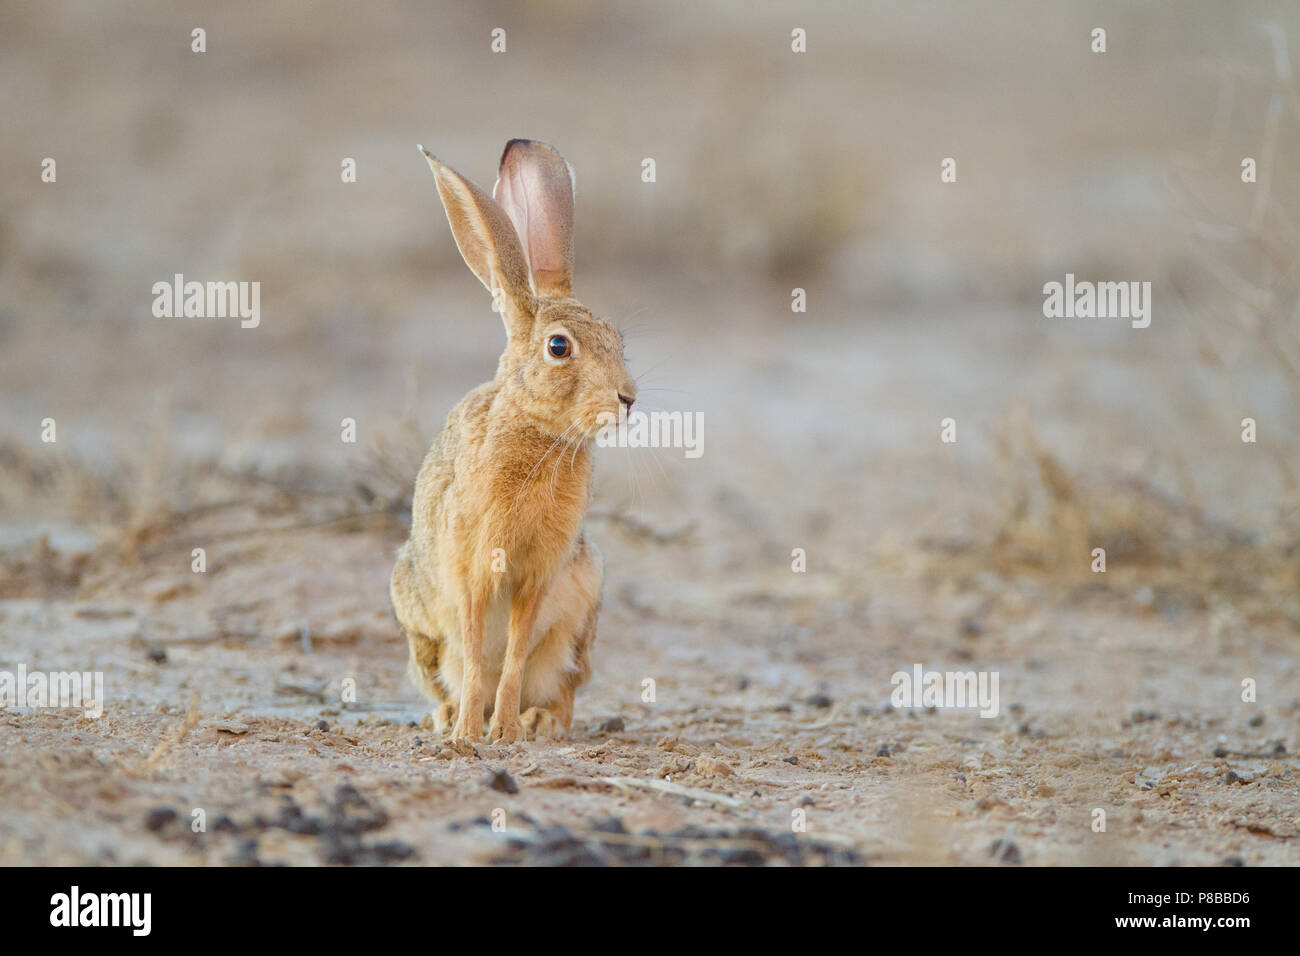 Cape hare portrait dans le parc transfrontalier Kgalagadi Photo Stock